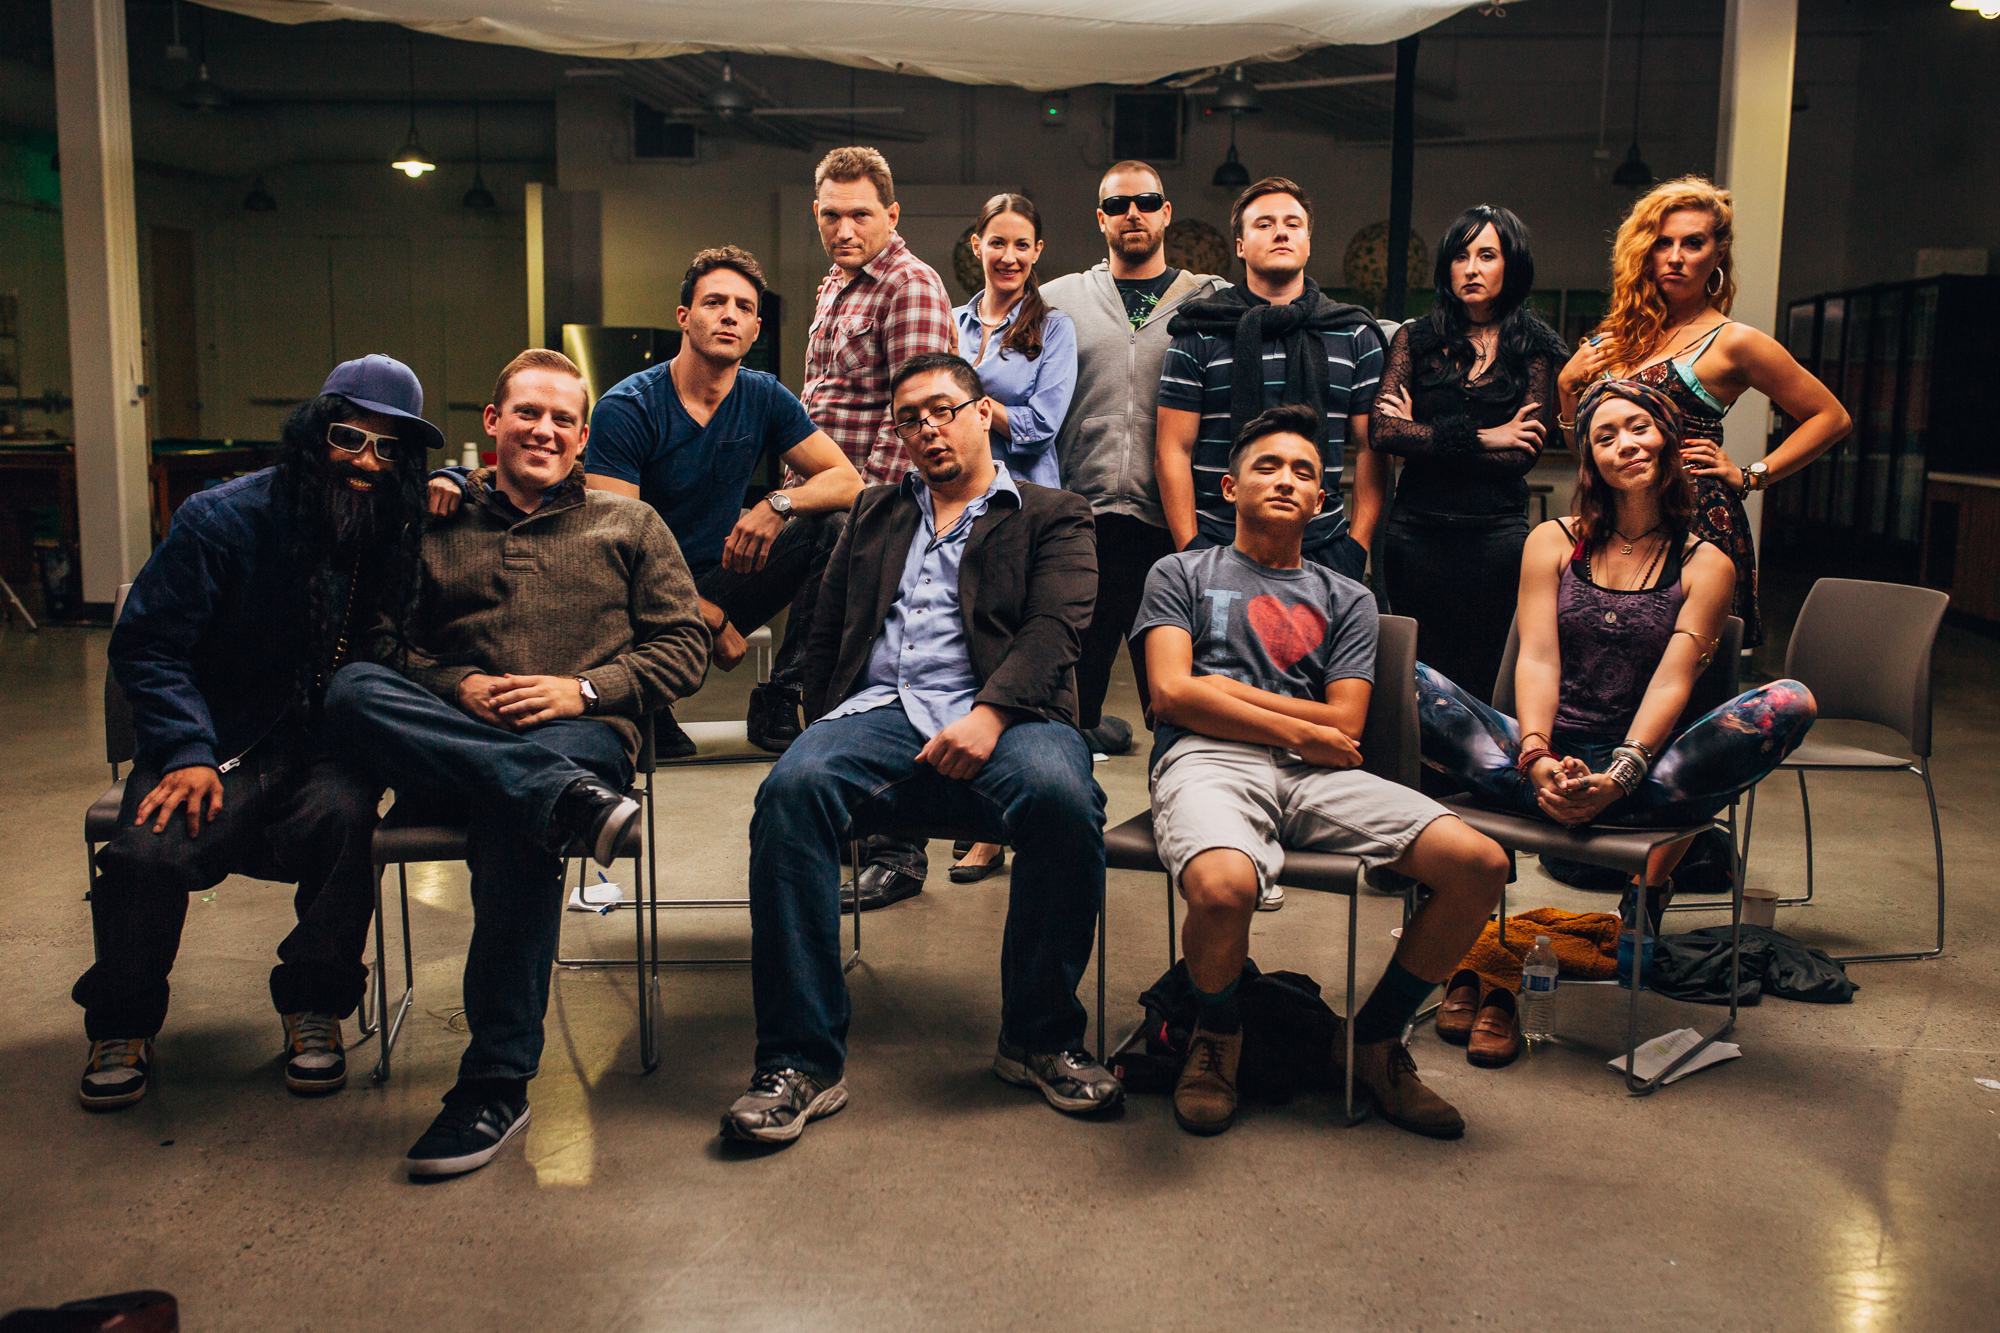 The Doucheaholics (from left to right): Mark Sho, Sean O'hare, Anthony Marks, Mitch Costanza, Sean McCarthy, Jenn Tripp, Jared Forman, Spencer Greene, Justin Tran, Elizabeth Mitchell, Syra McCarthy and Ashley Sullivan.